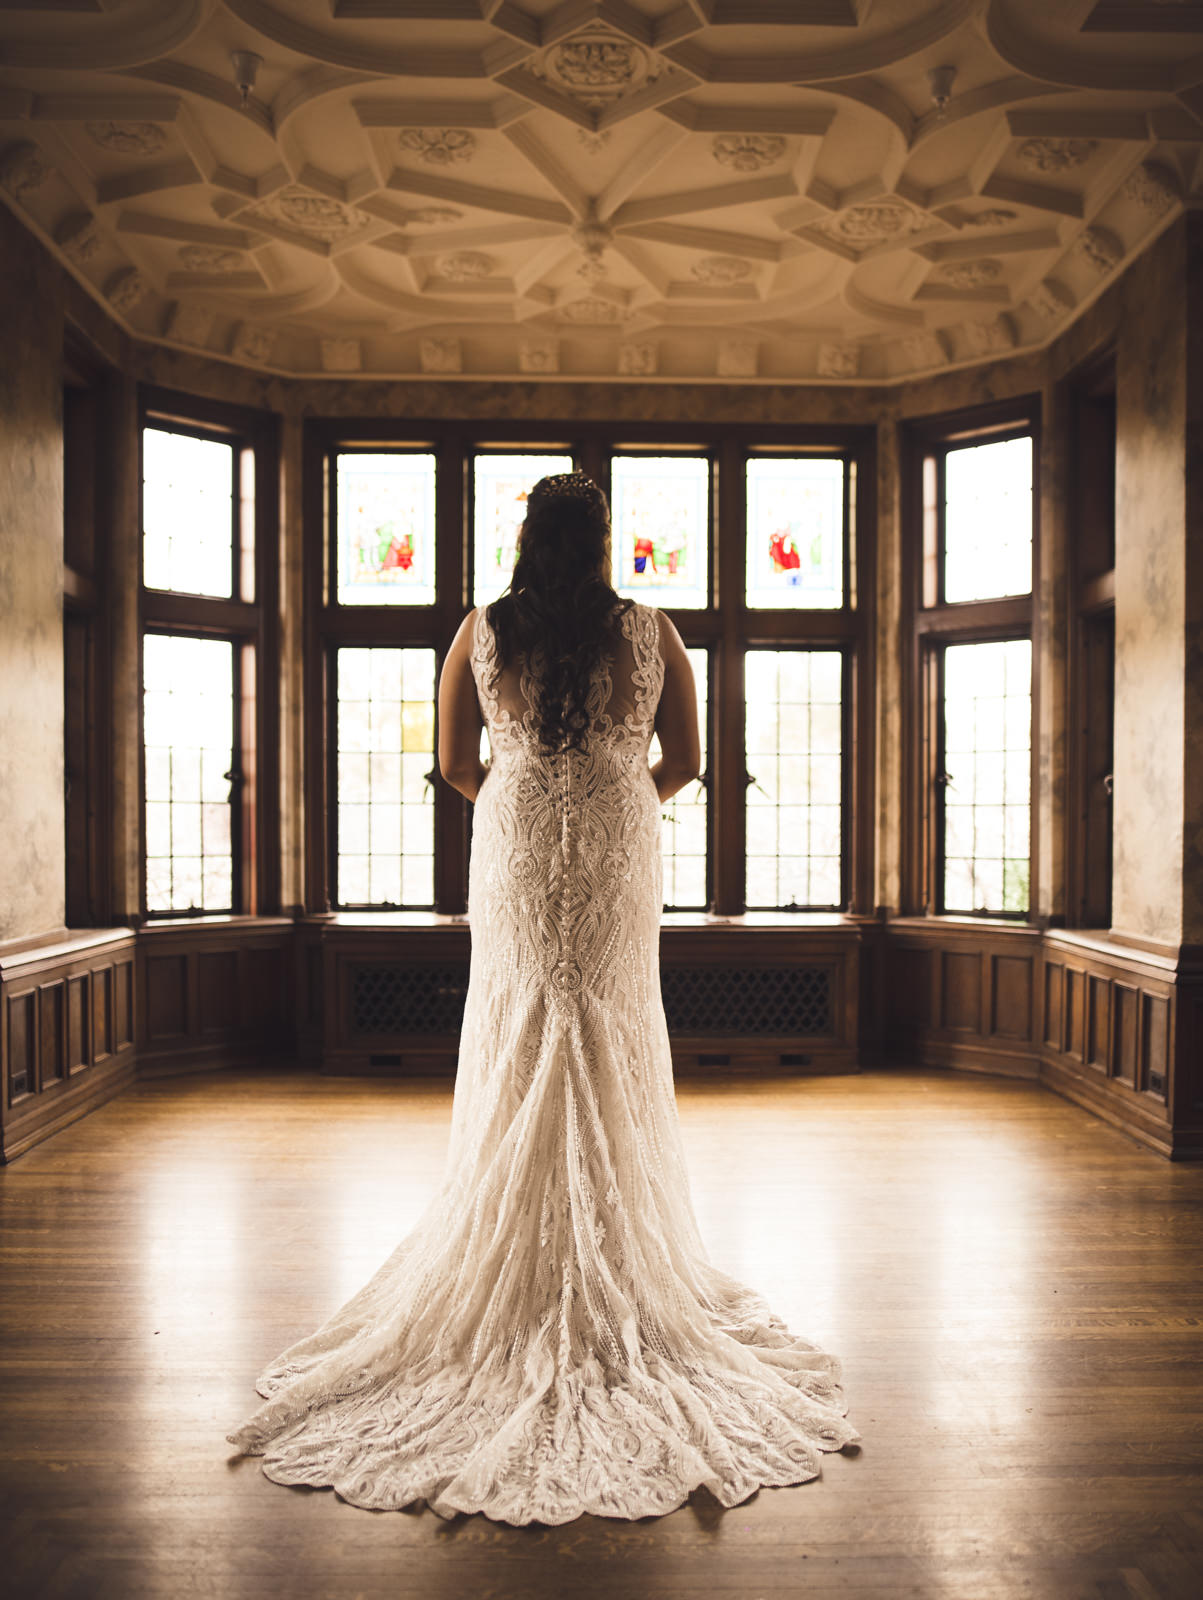 rollins-mansion-2687-wedding-photographer-des-moines-iowa-m-c.jpg